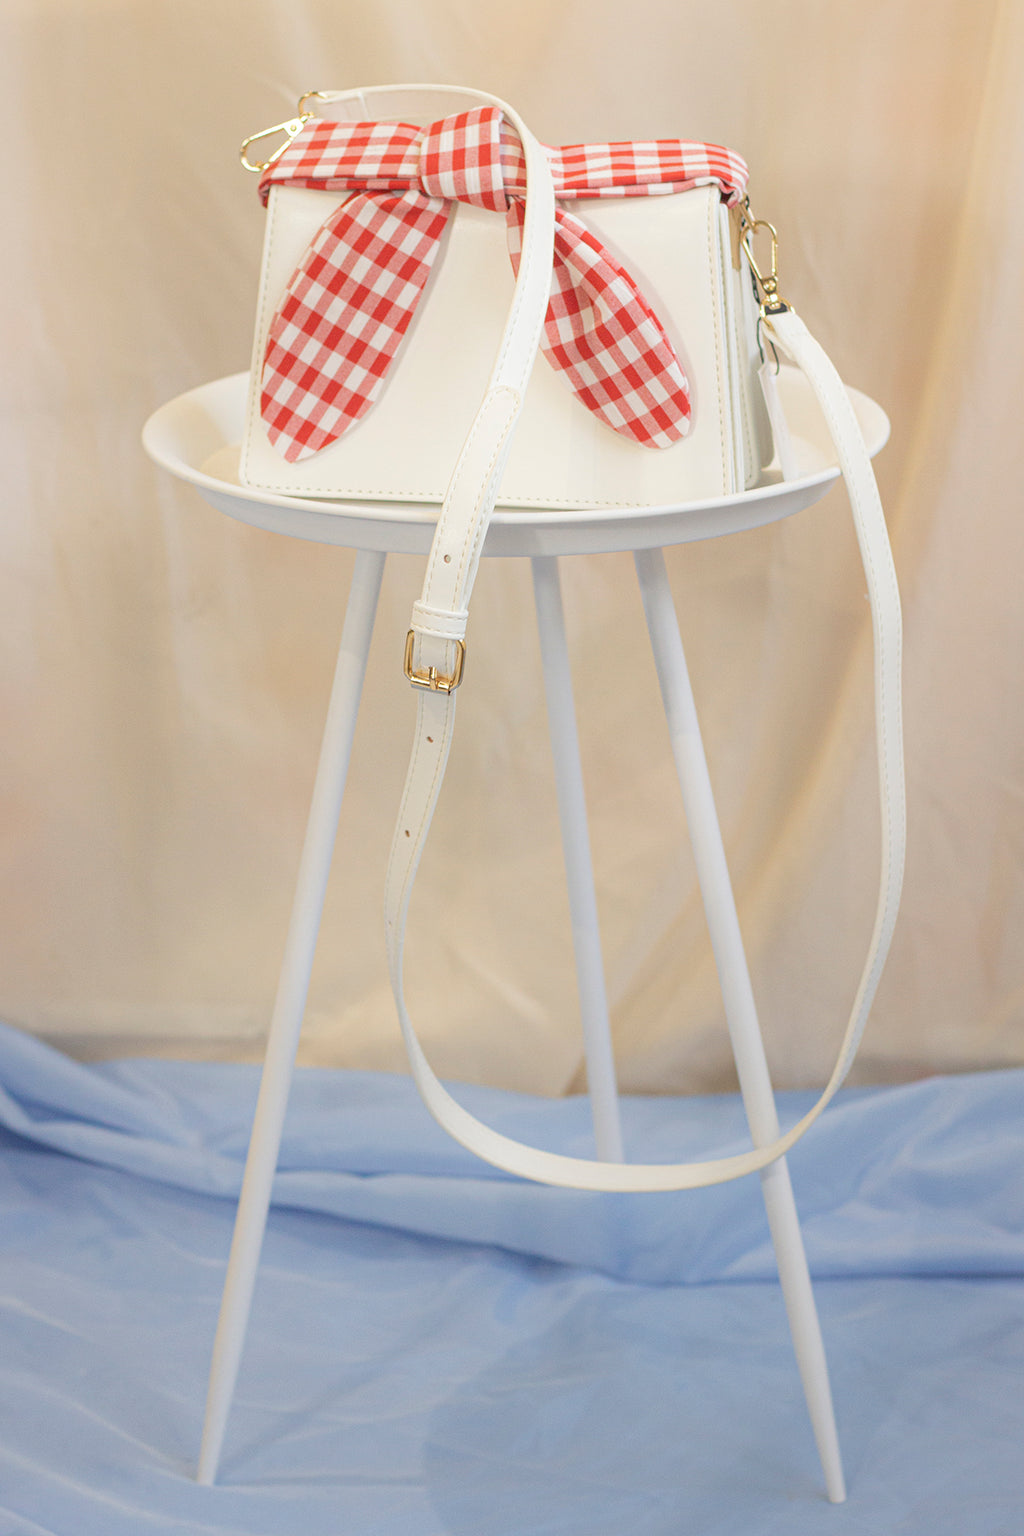 Messenger Bag With Gingham Picnic Handle - Sugar + Style